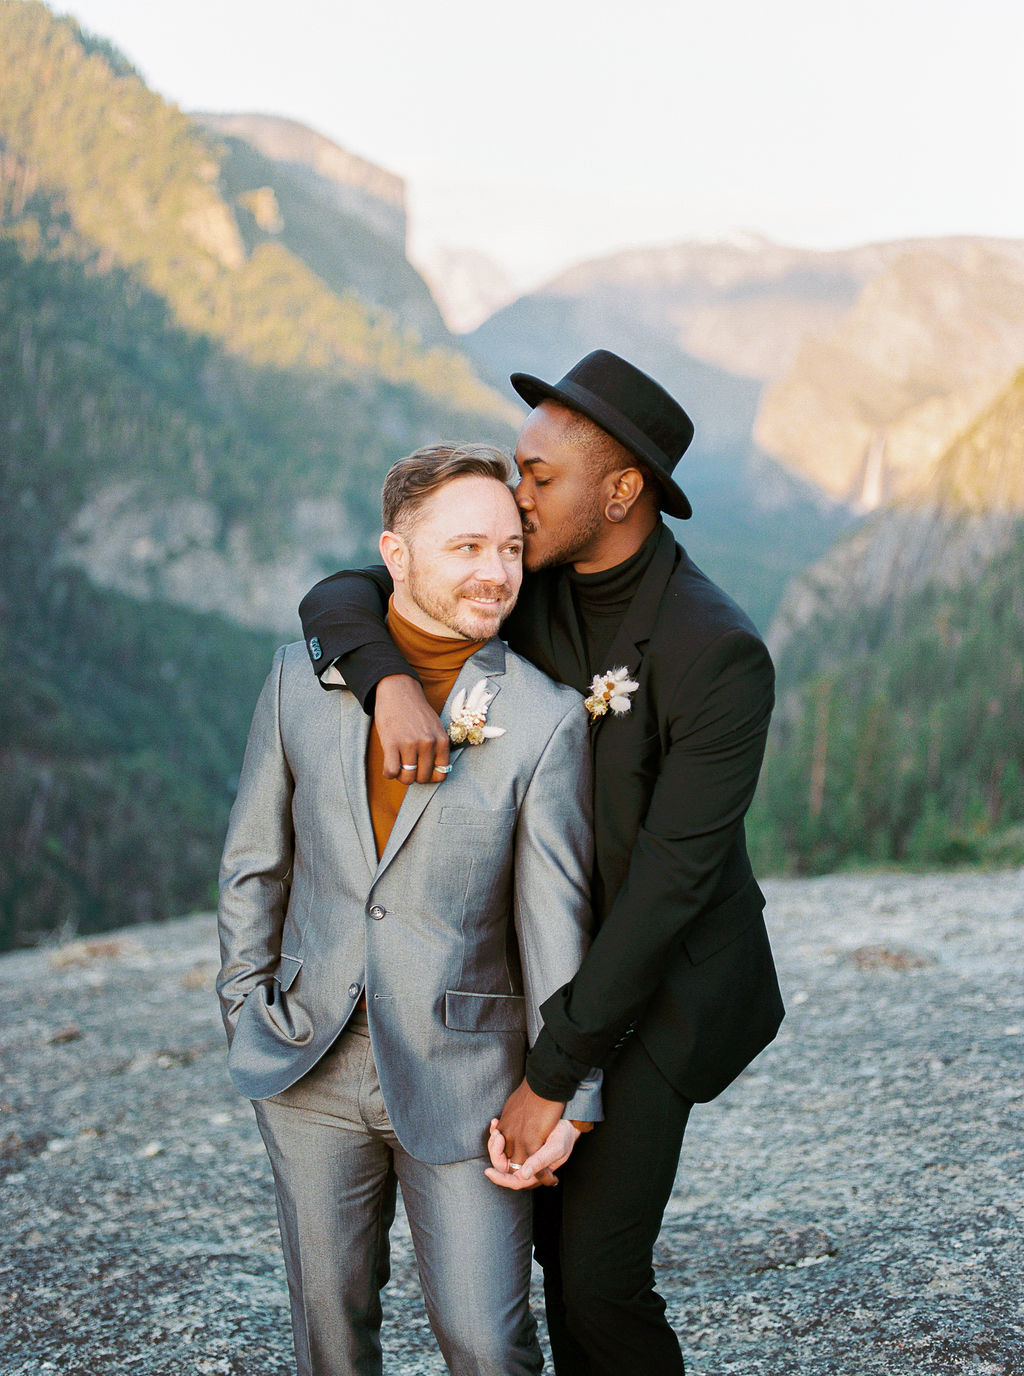 grooms embracing near mountains